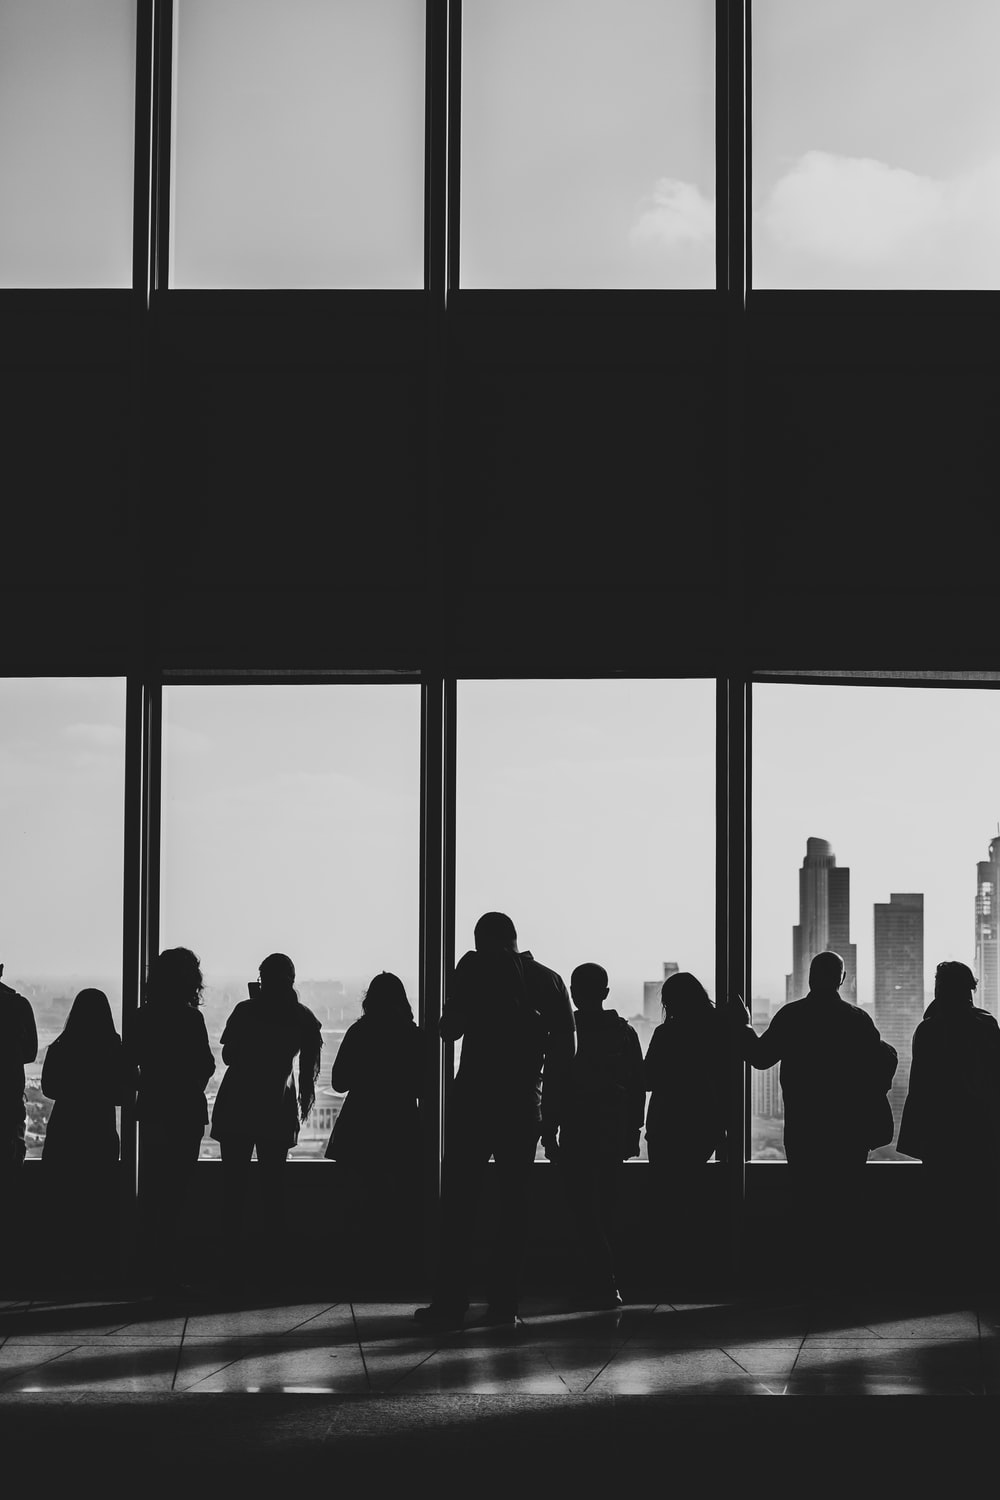 silhouette of people looking at windows